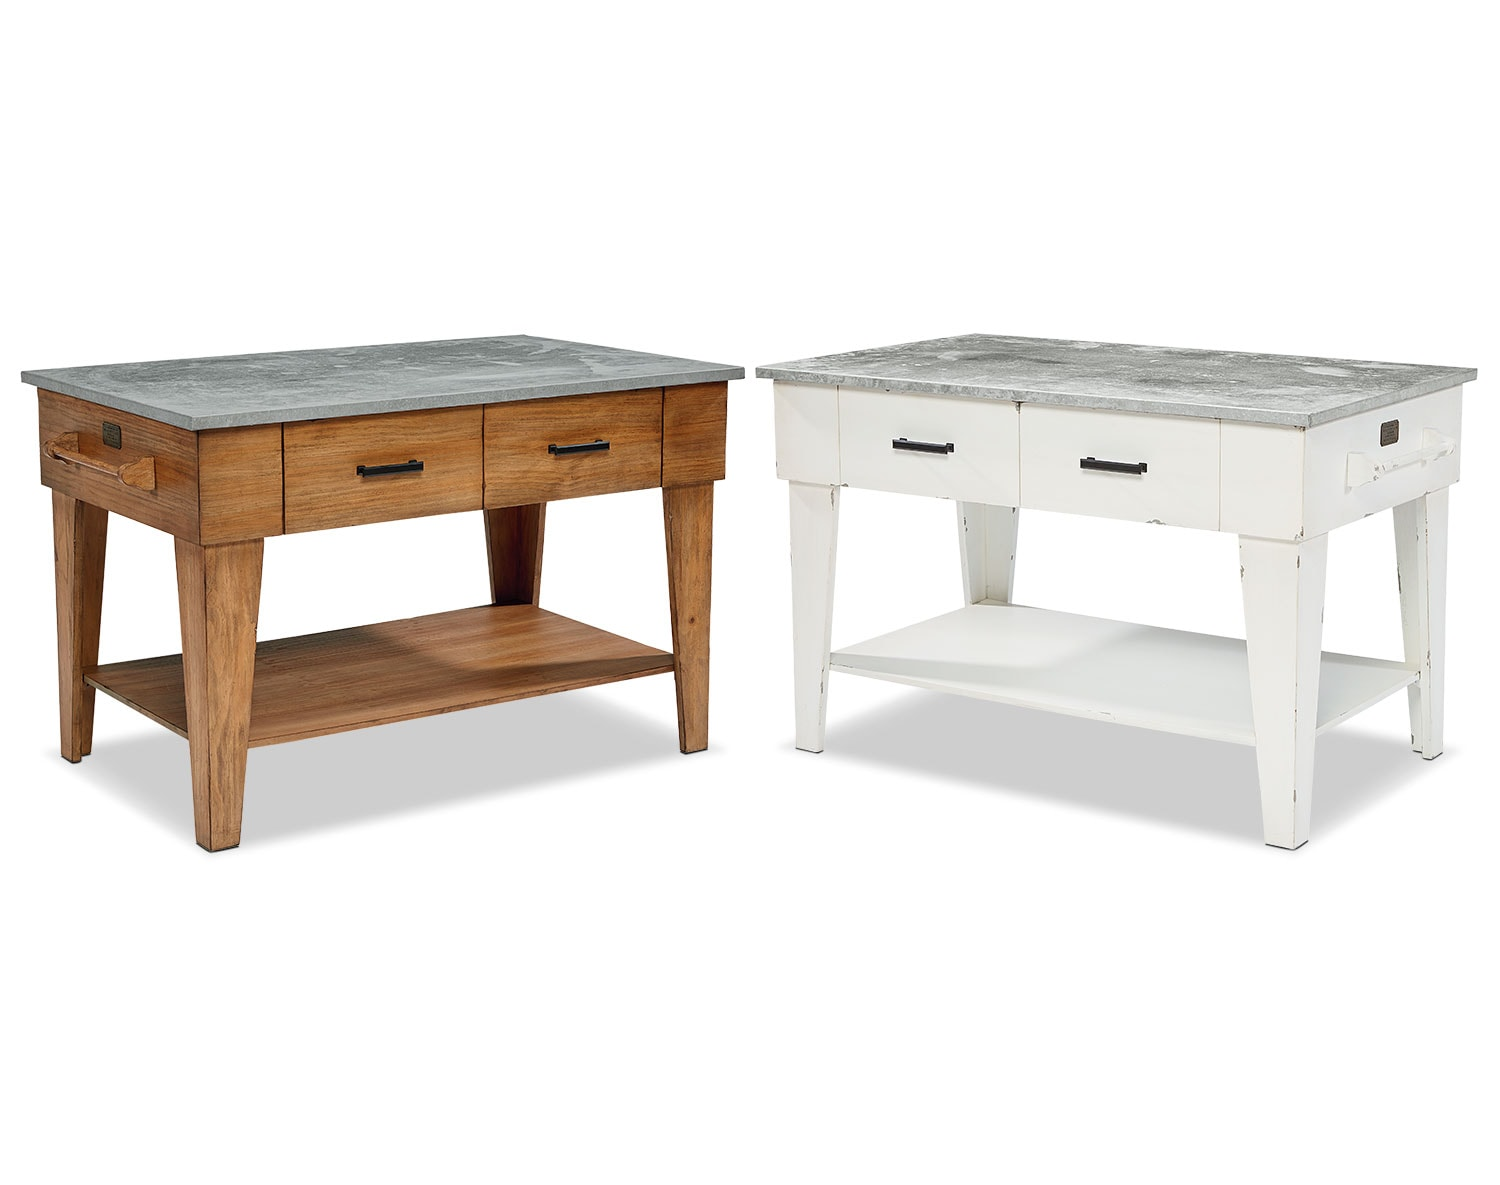 The Farmhouse Kitchen Island Collection